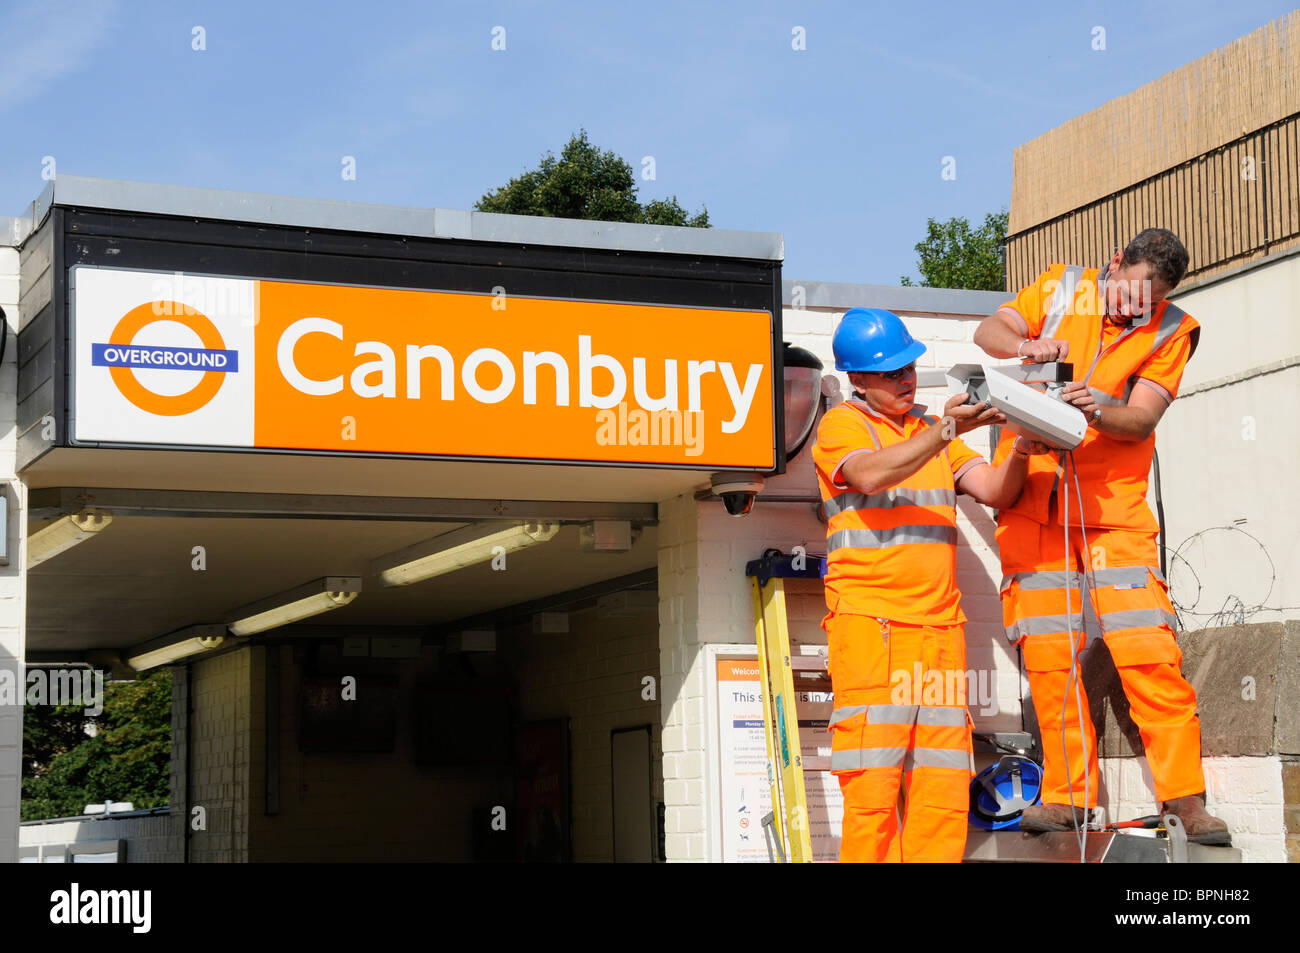 RAIL WORKERS FITTING SECURITY CAMERA AT CANONBURY TRAIN OVERGROUND STATION IN LONDON UK - Stock Image